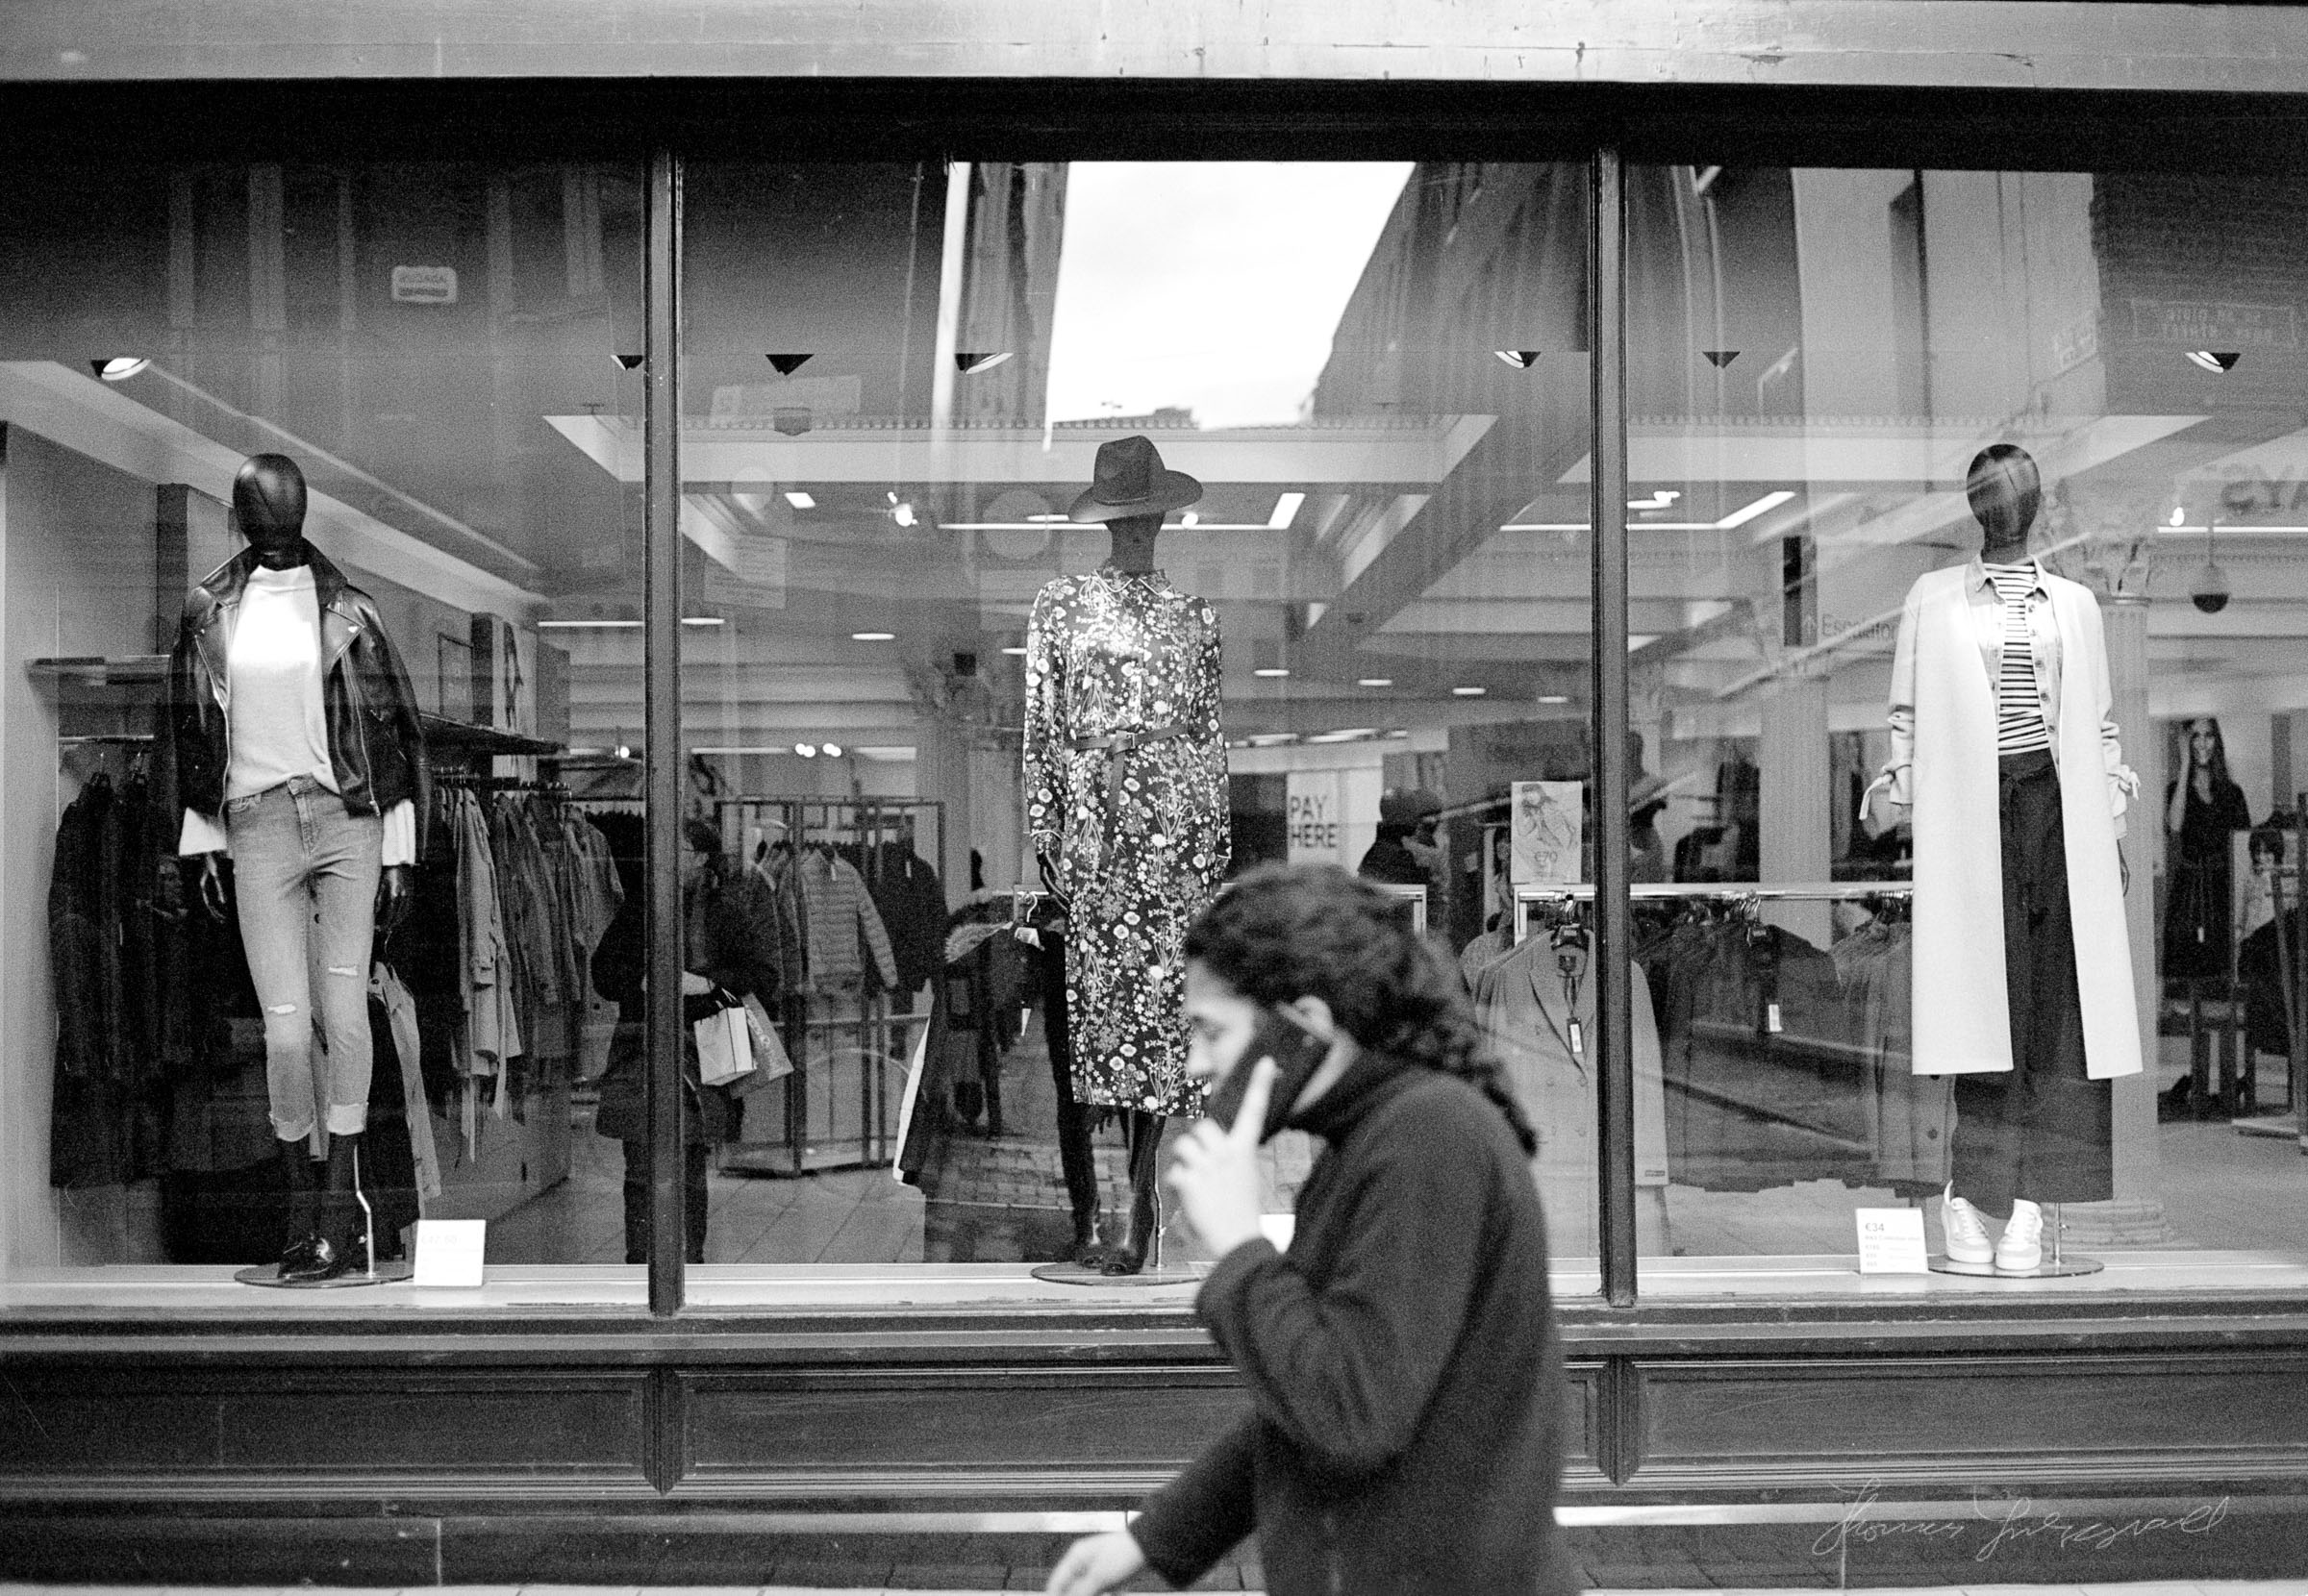 Person walking by Mannequins in a Window - Streets of Dublin - Dublin on Film